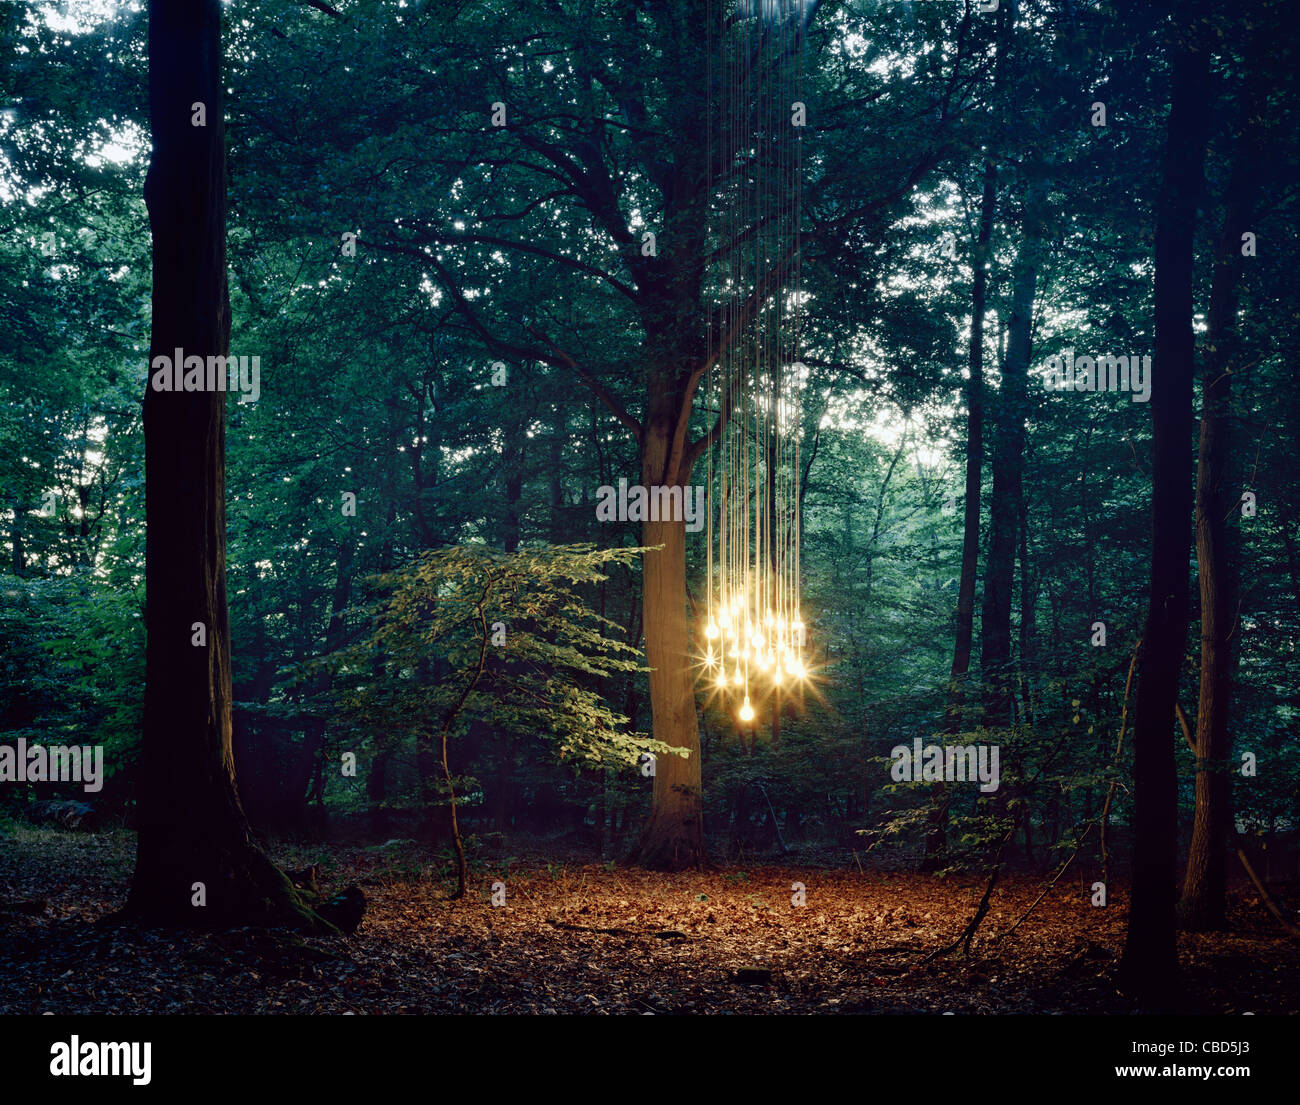 Lights hanging from tree in forest Stock Photo